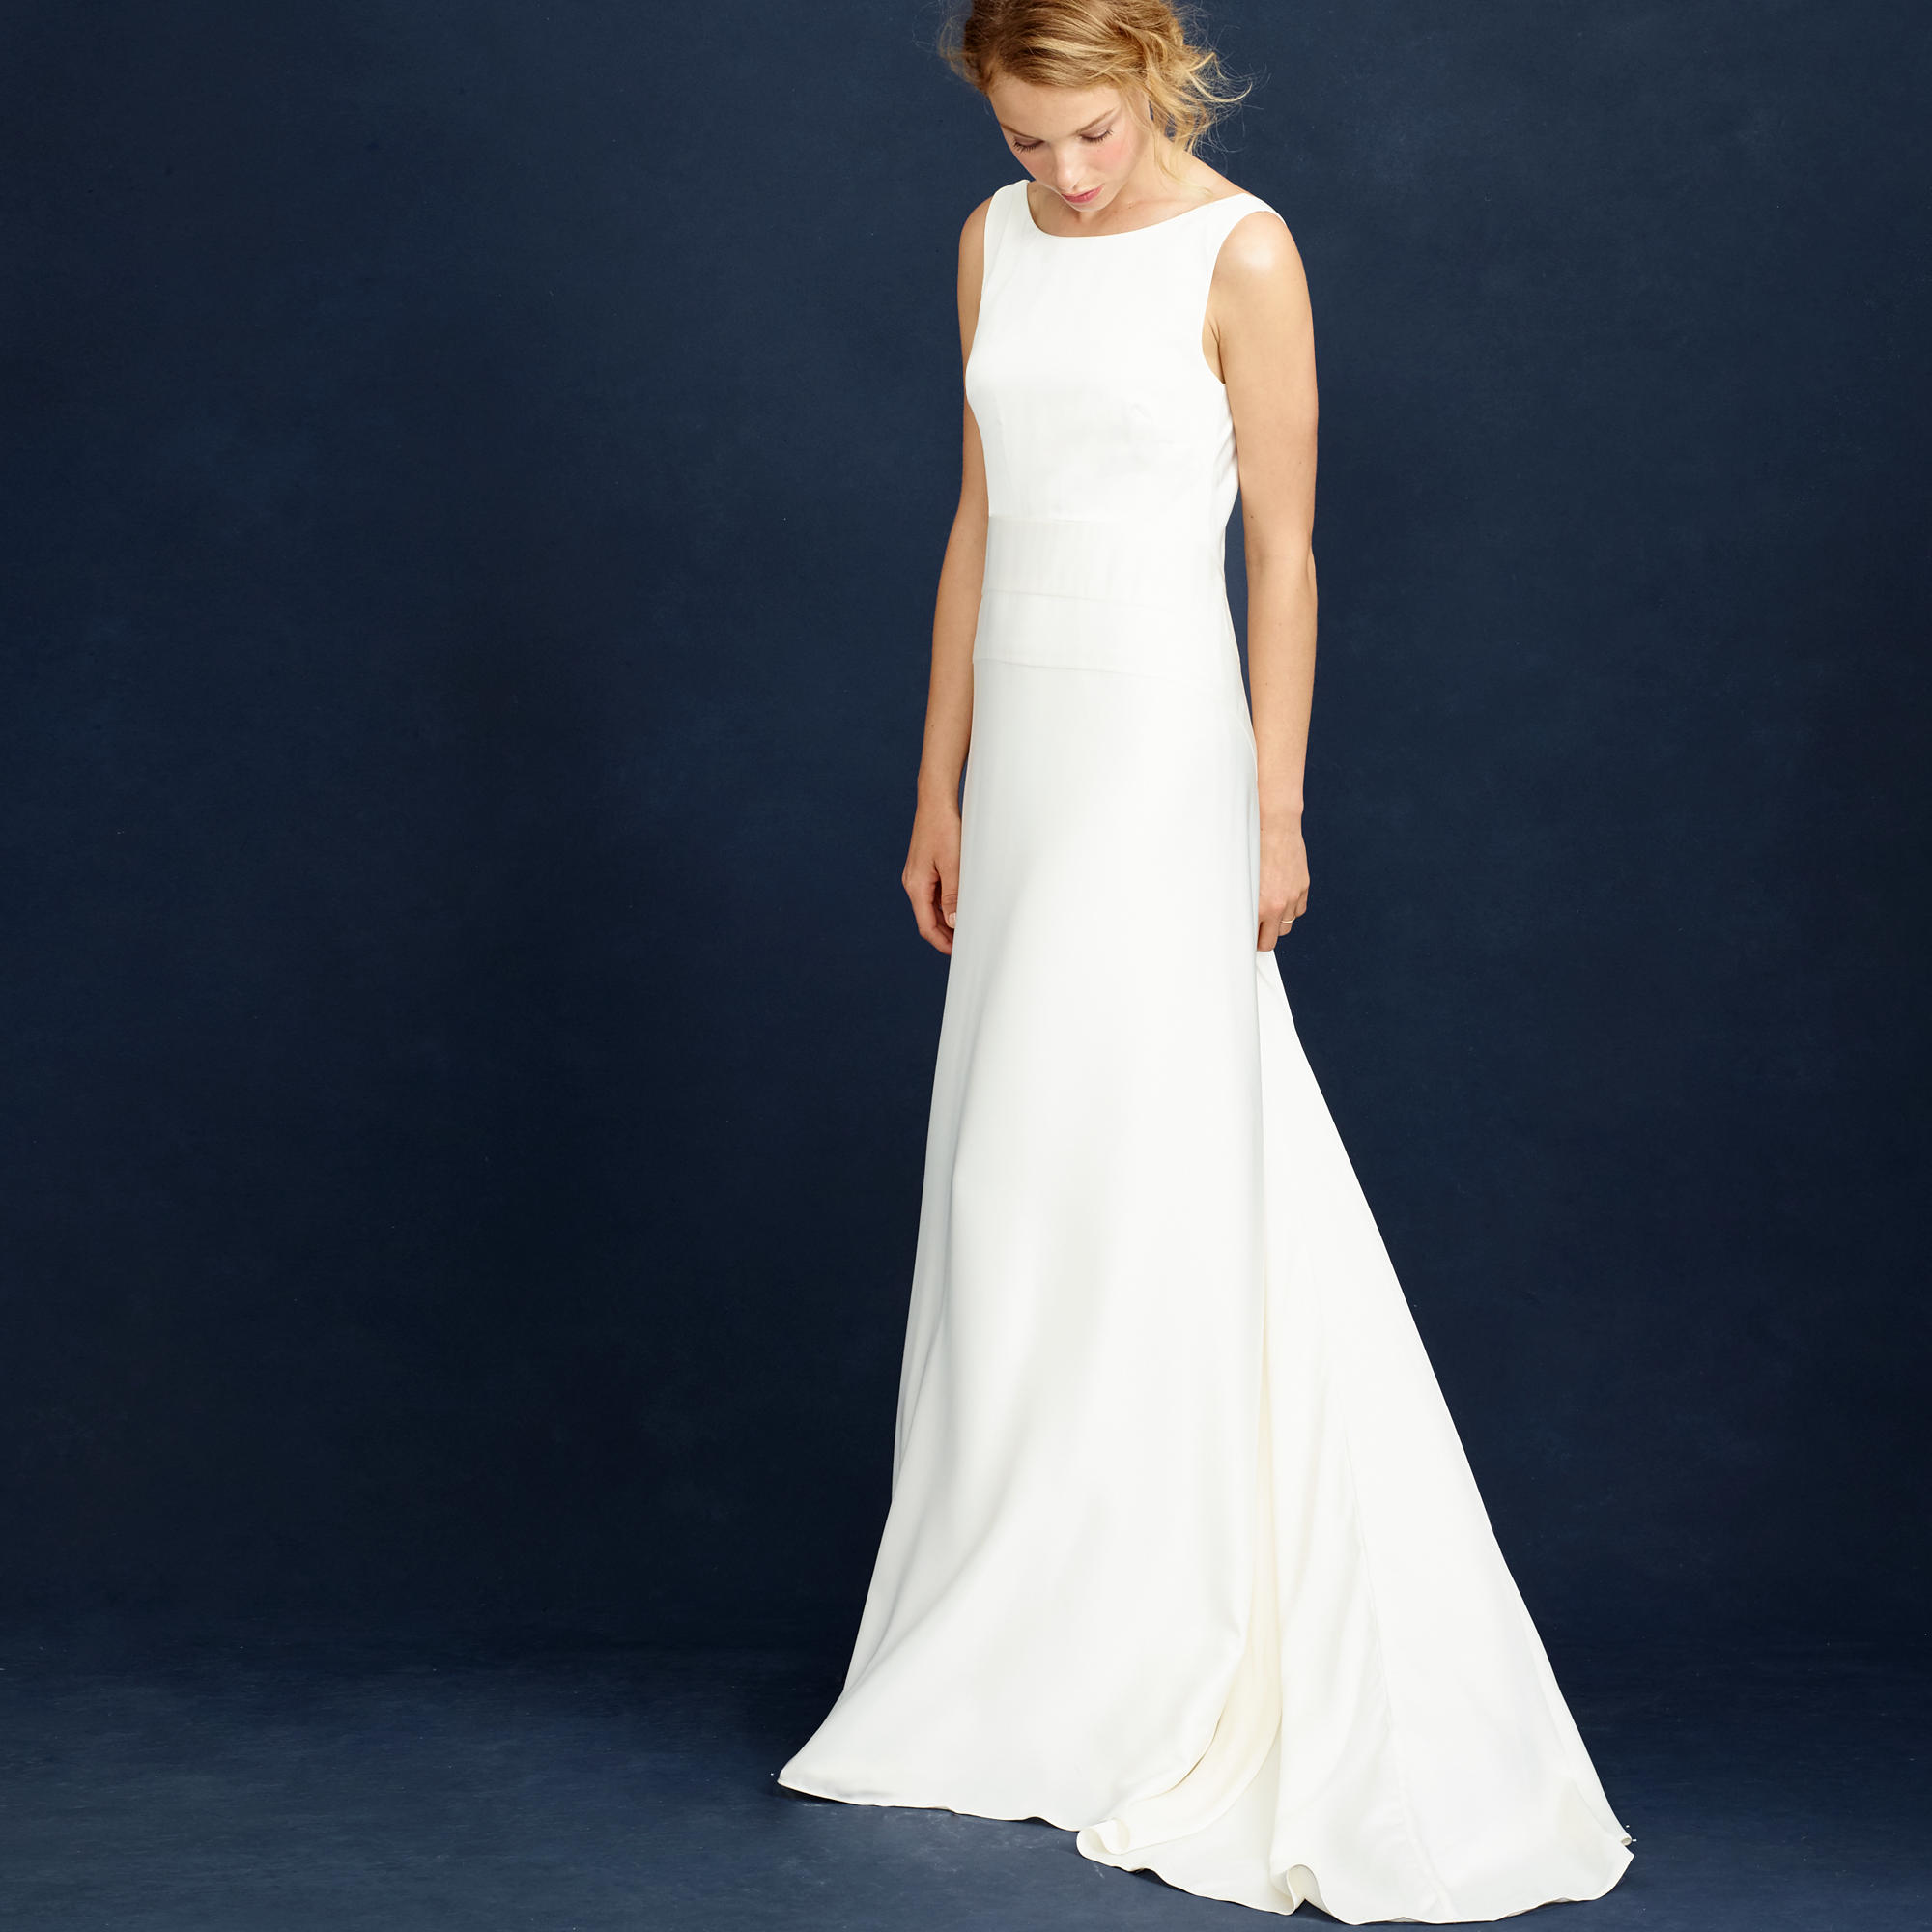 These 10 J. Crew Bridal Looks Will Have You All